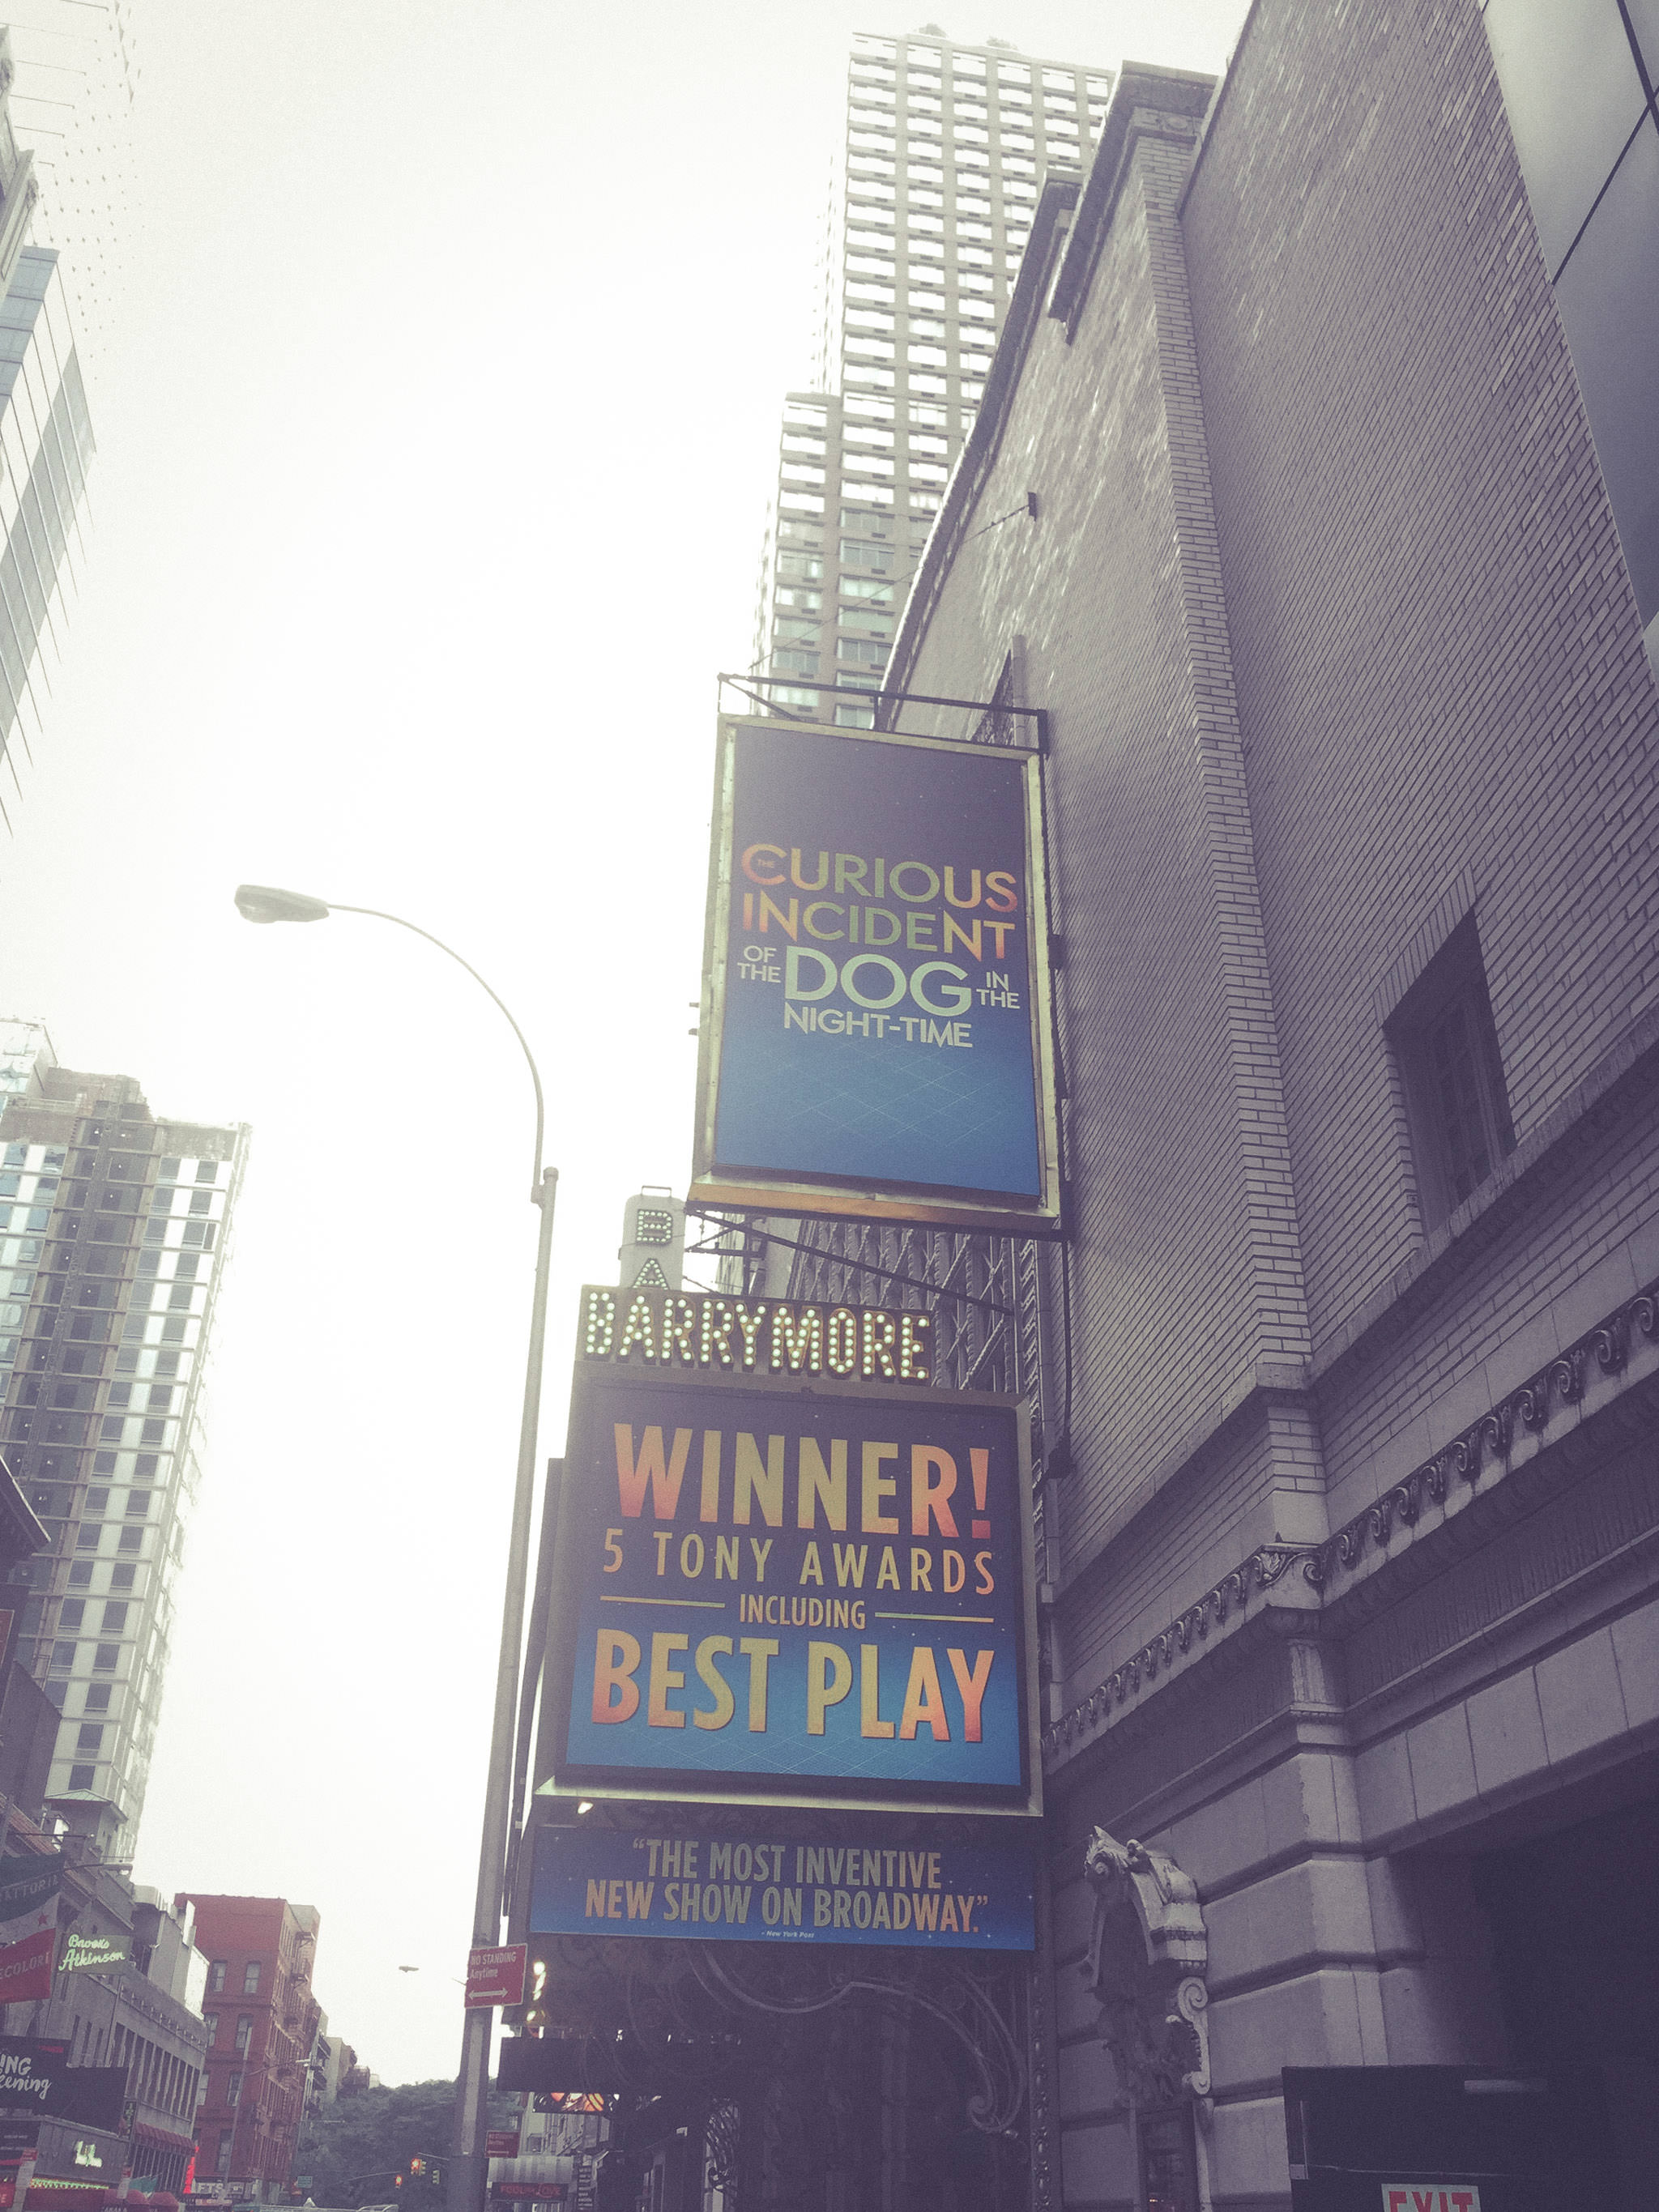 Barrymore Theatre on 47th Street, NYC (Aug 2015)